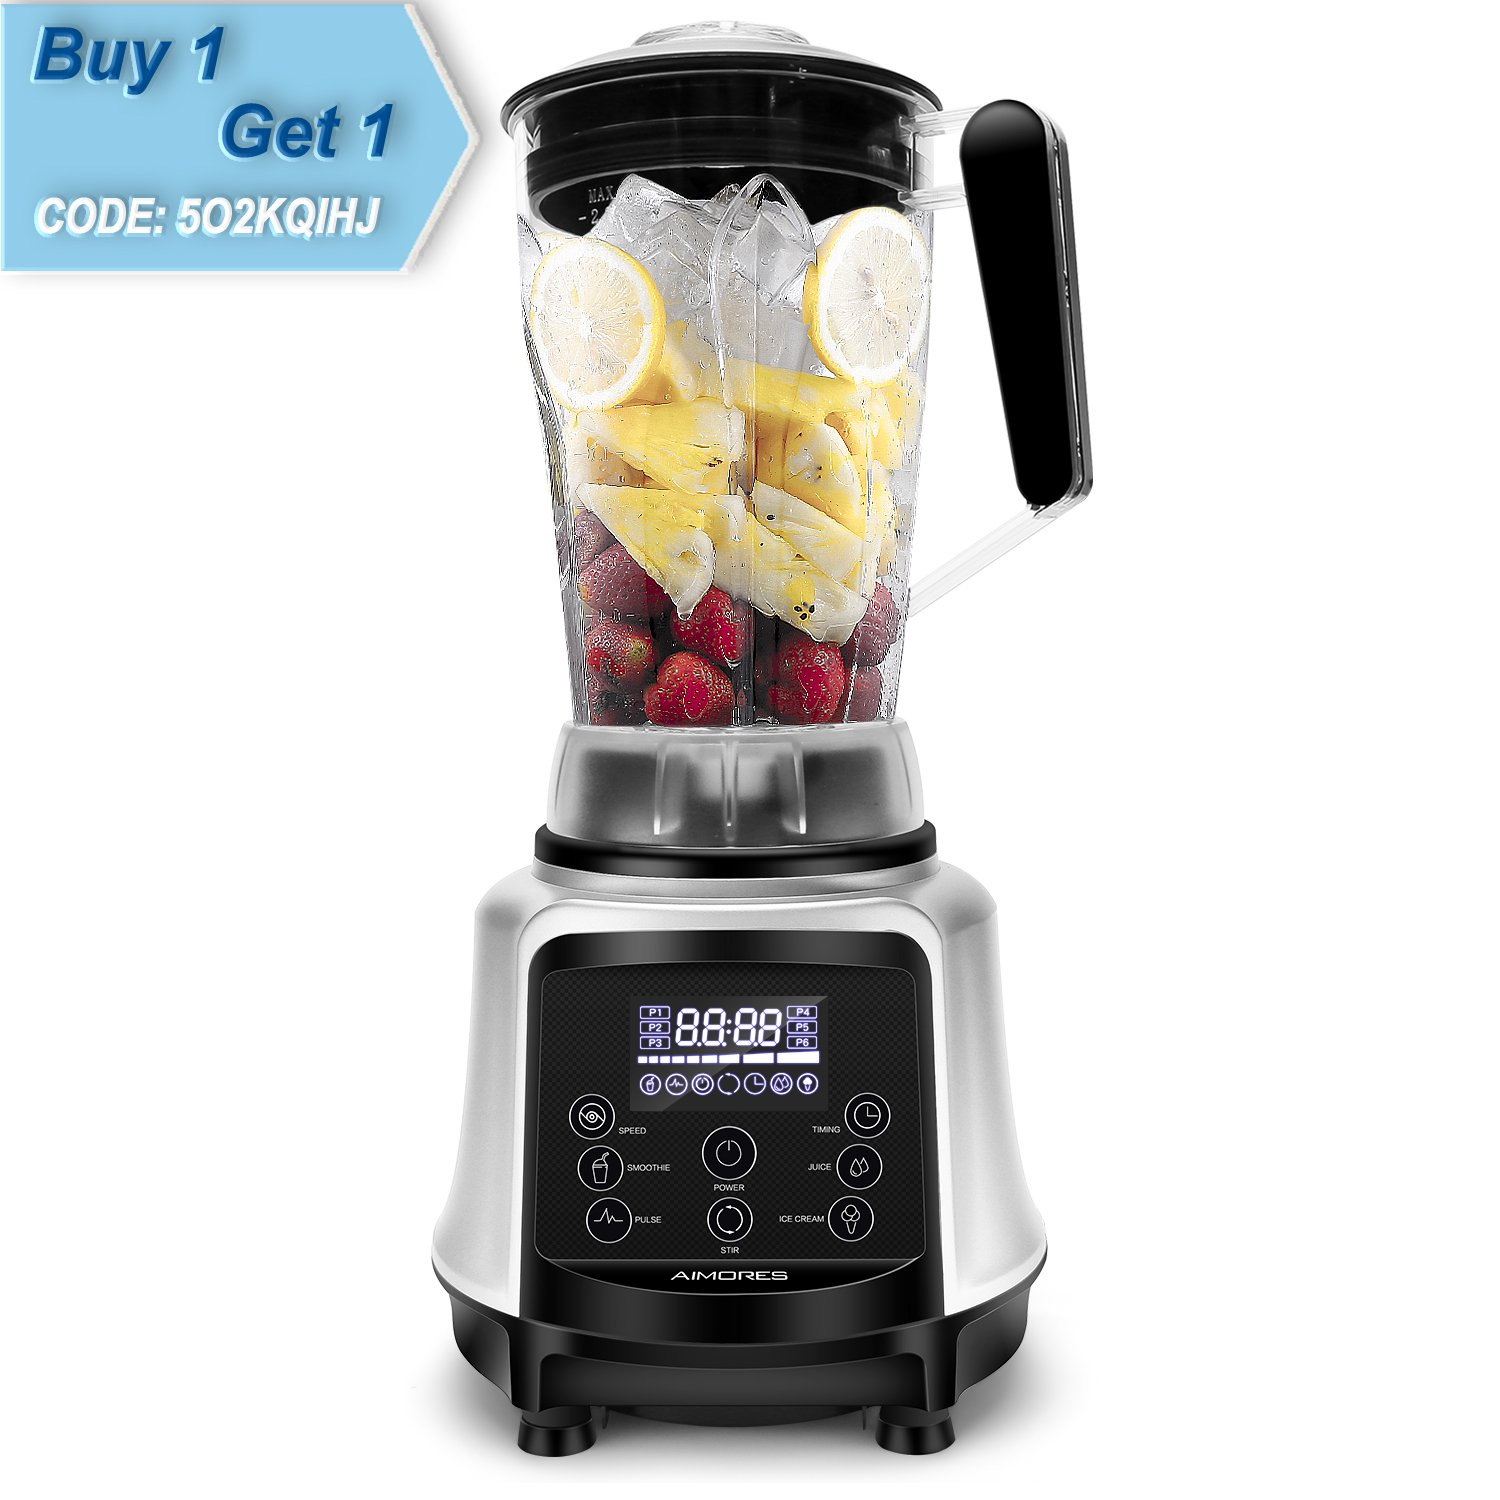 Amazoncom Aimores Professional Blender For Shakes And Smoothies, Food Processor,